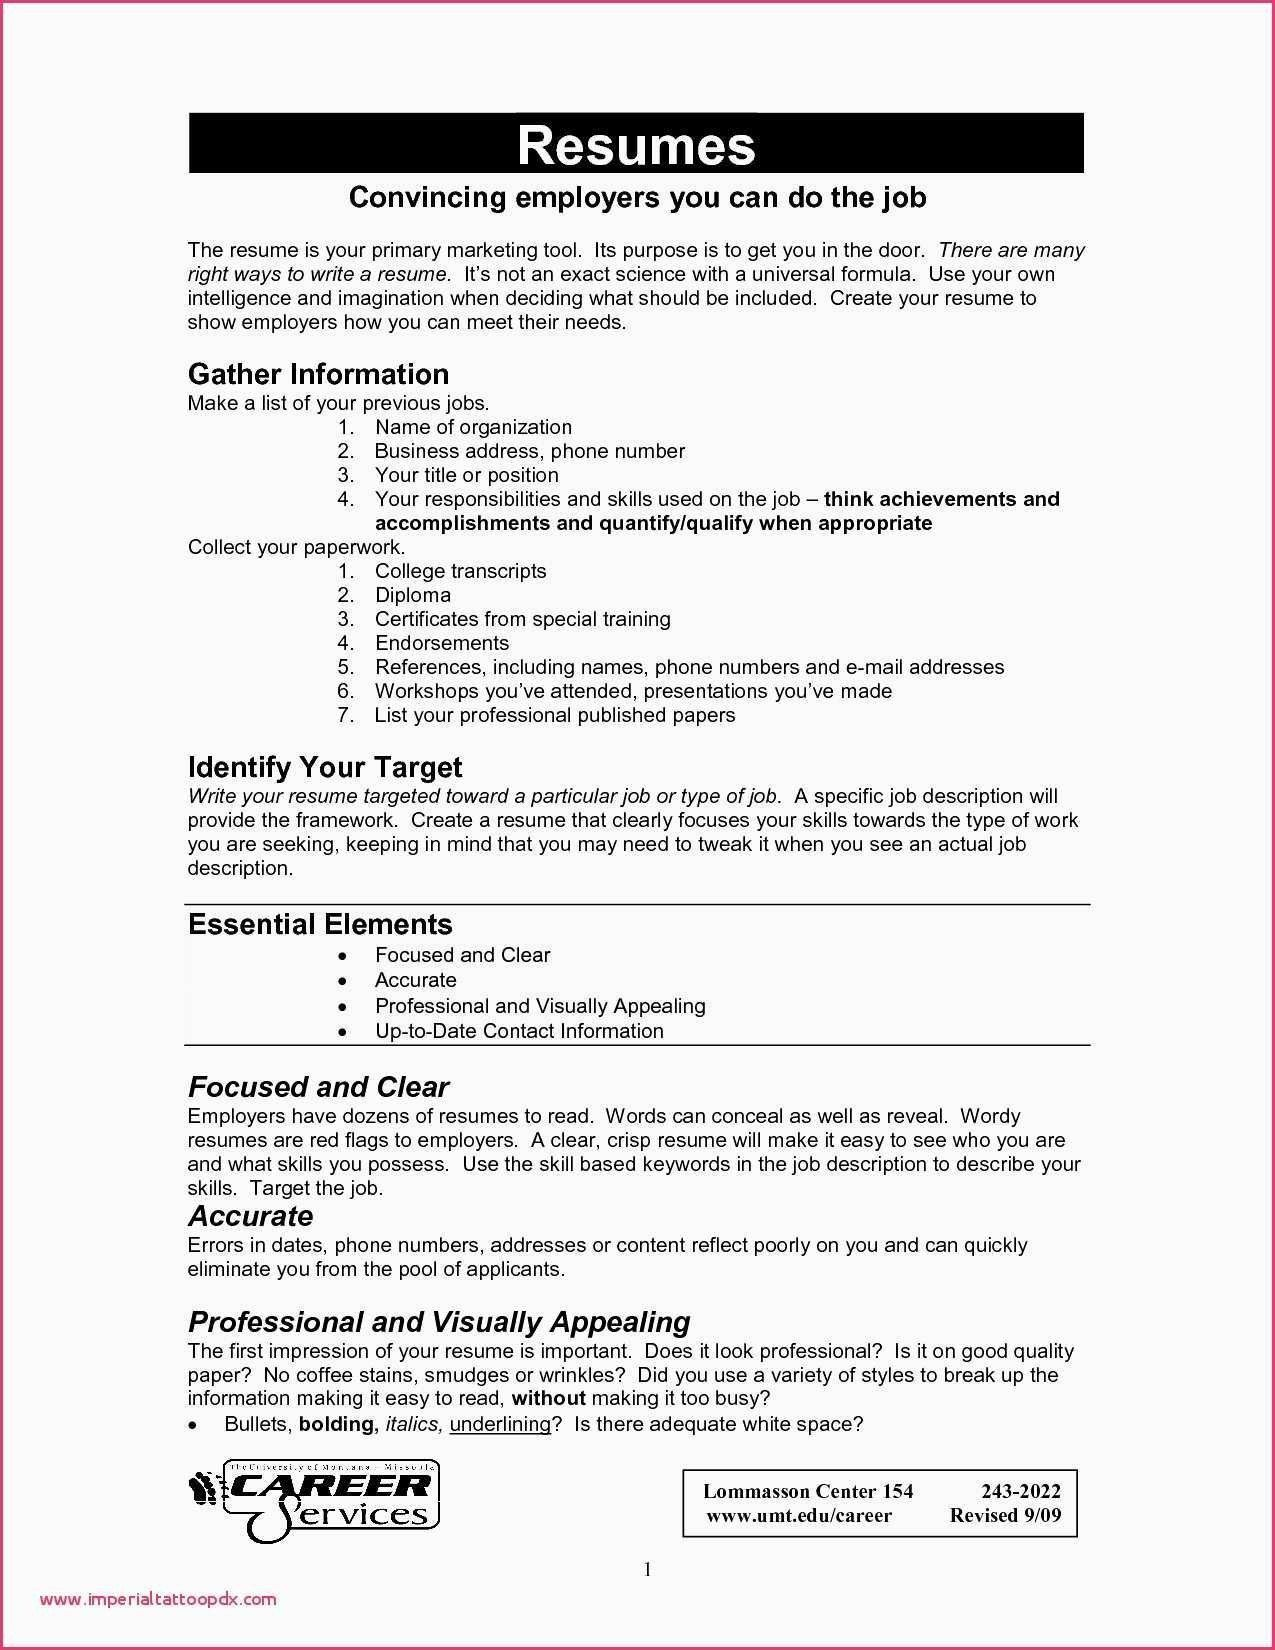 first job time working basic resume template best examples worker techniques experience Resume First Time Worker Resume